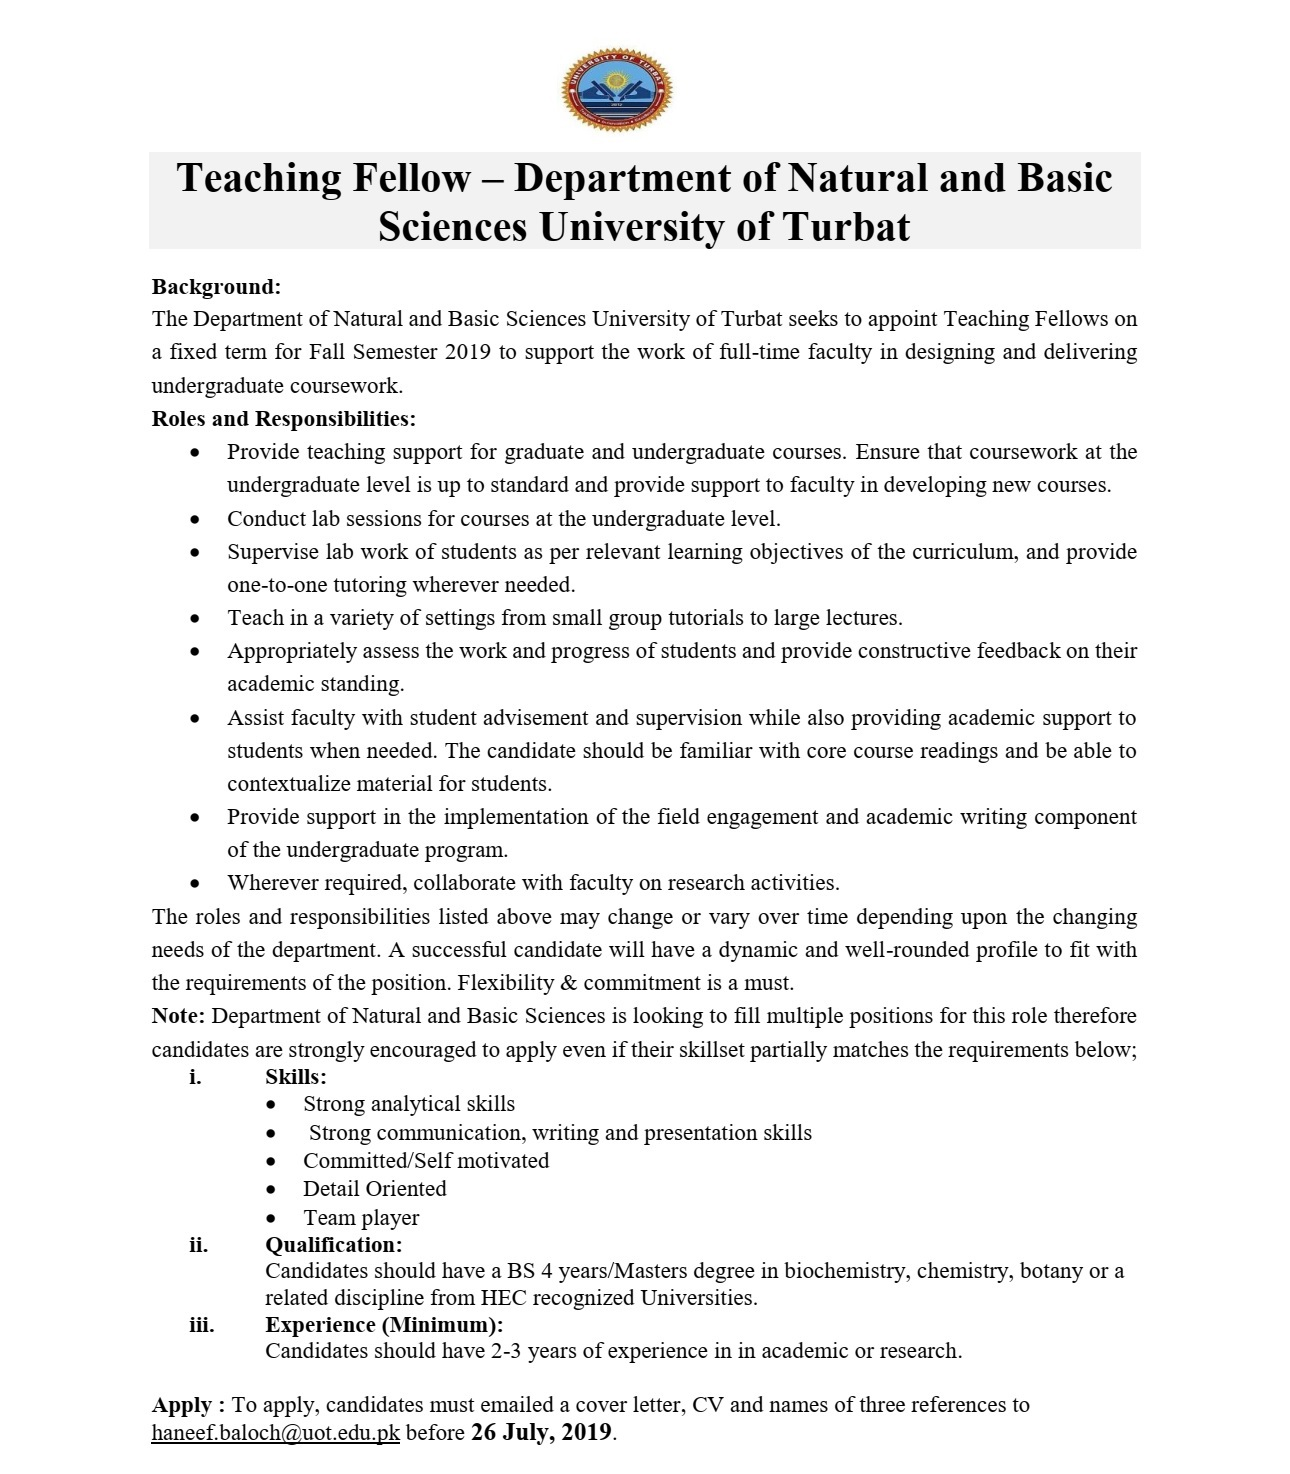 Teaching Fellow - Department of Natural and Basic Sciences University of Turbat